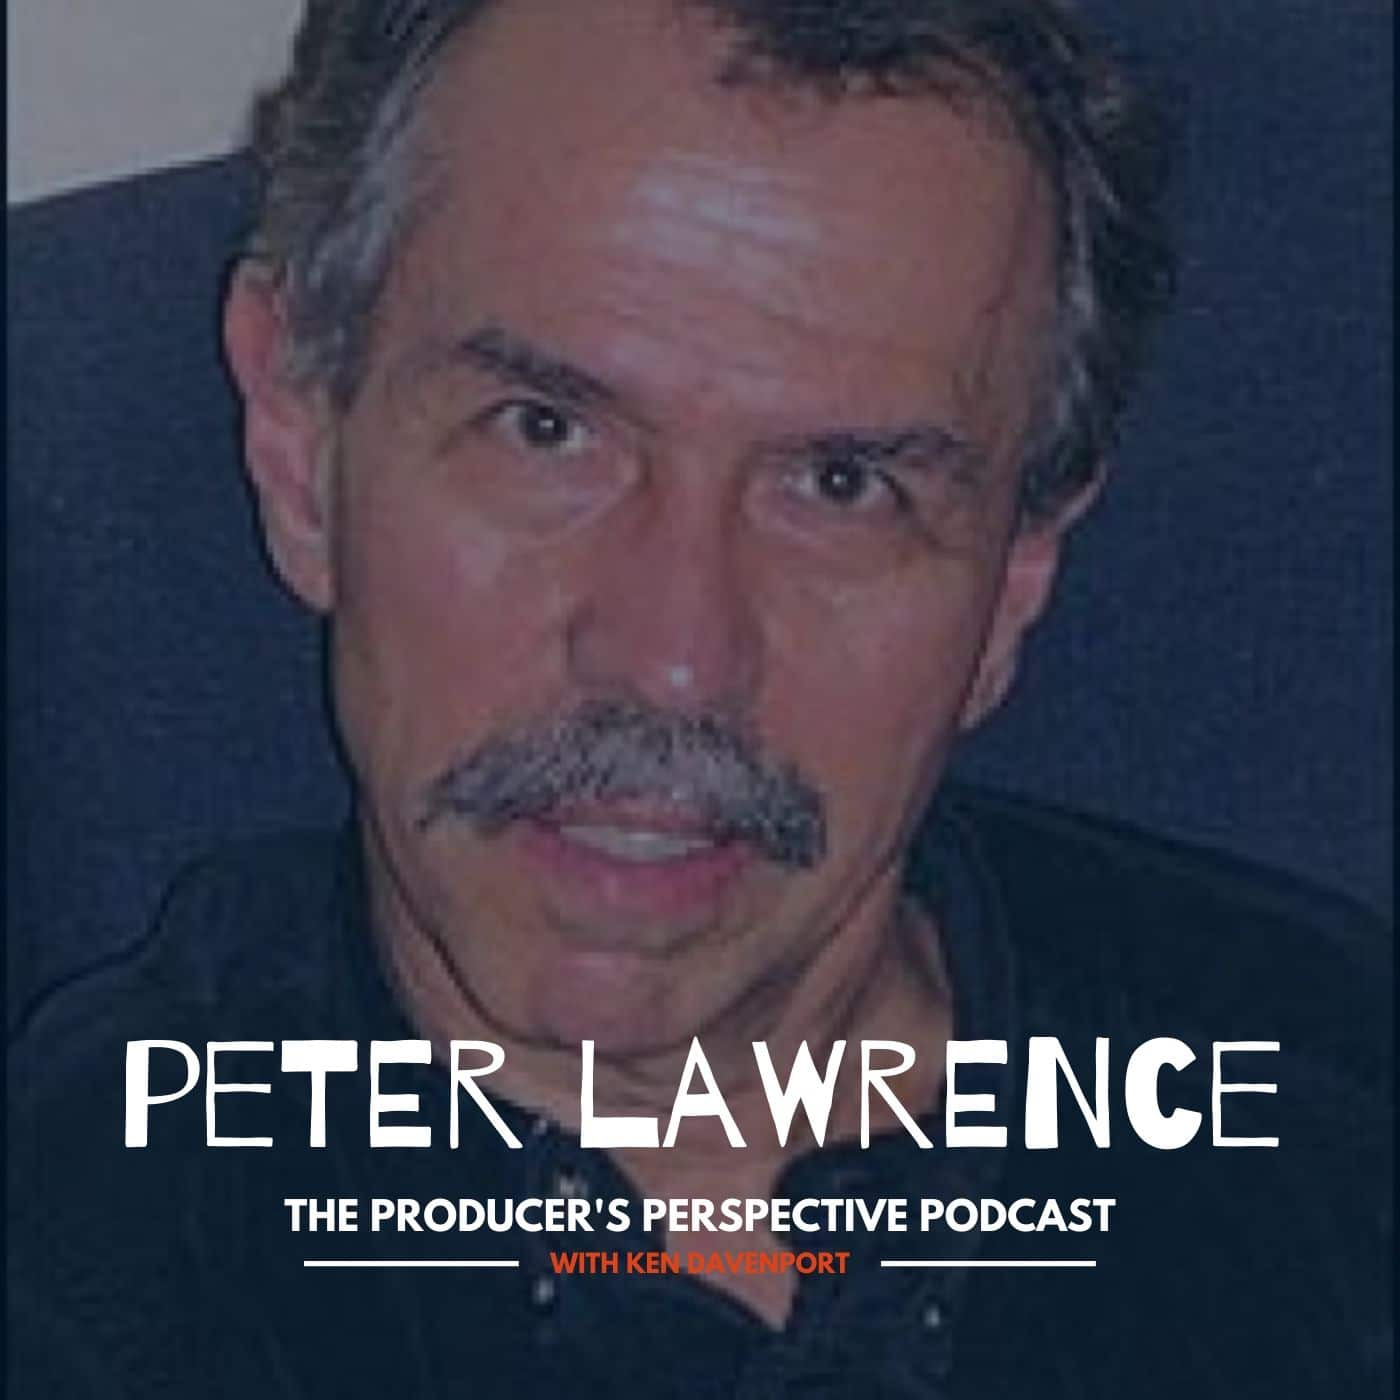 Ken Davenport's The Producer's Perspective Podcast Episode 78 - Peter Lawrence